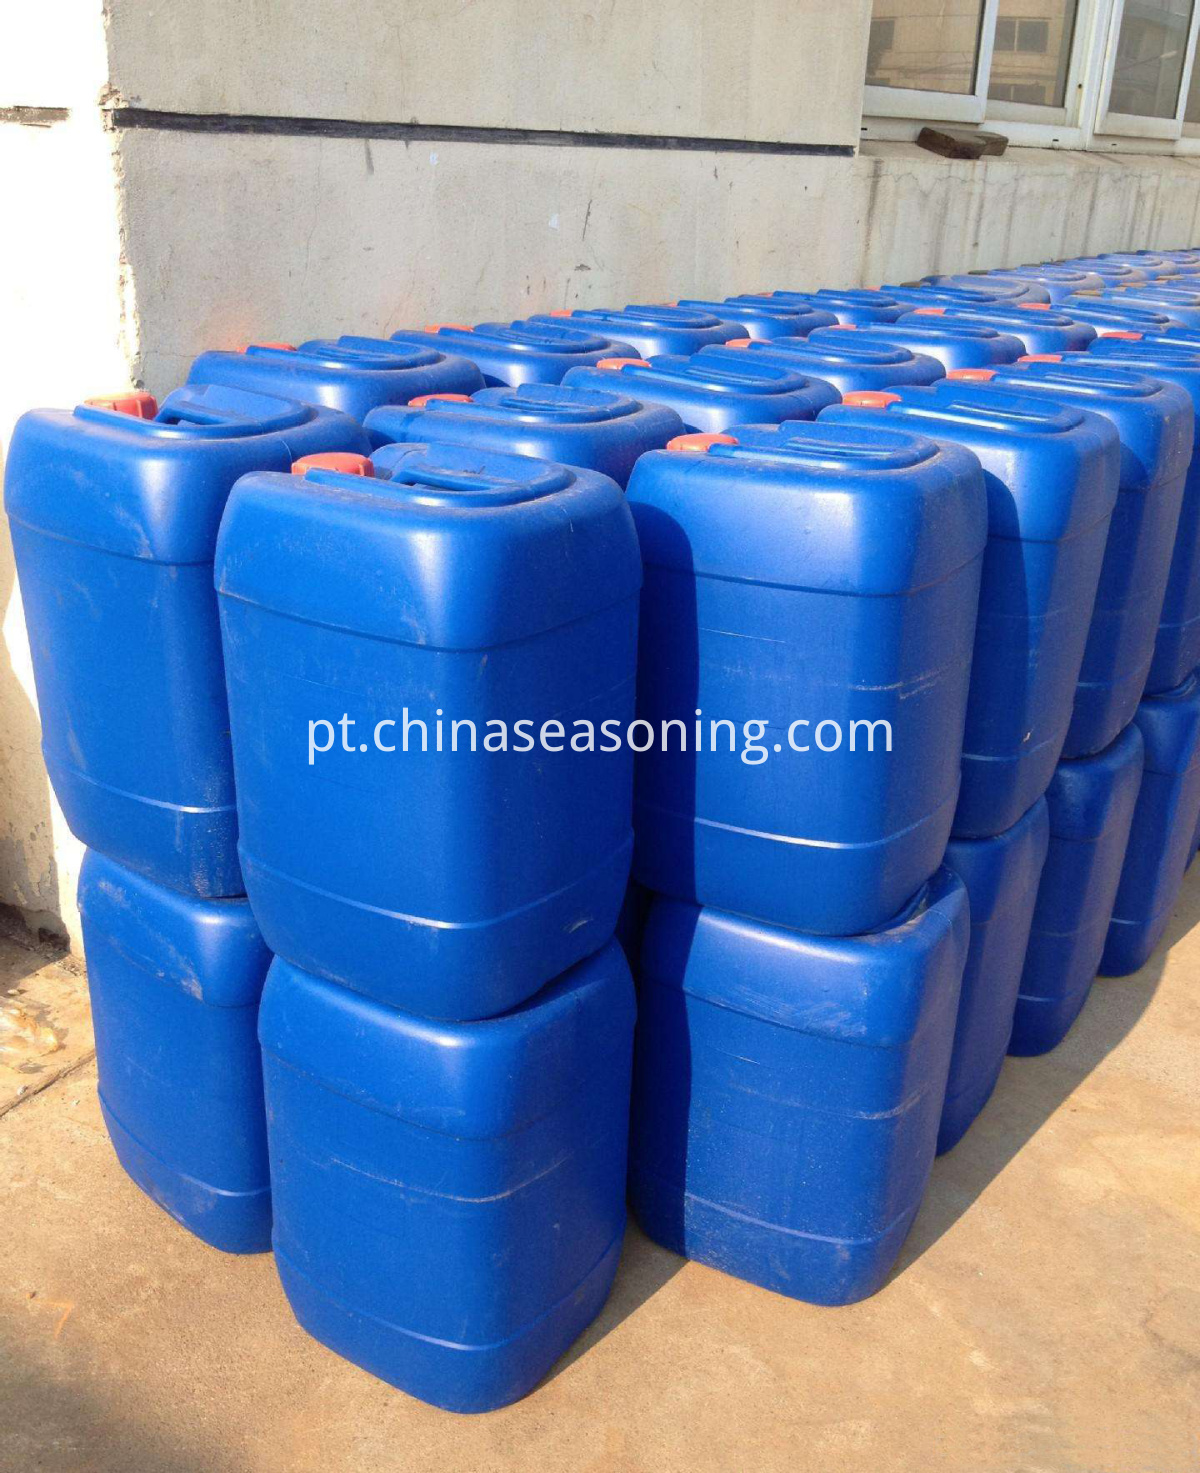 Dodecyl trimethyl ammonium chloride 1